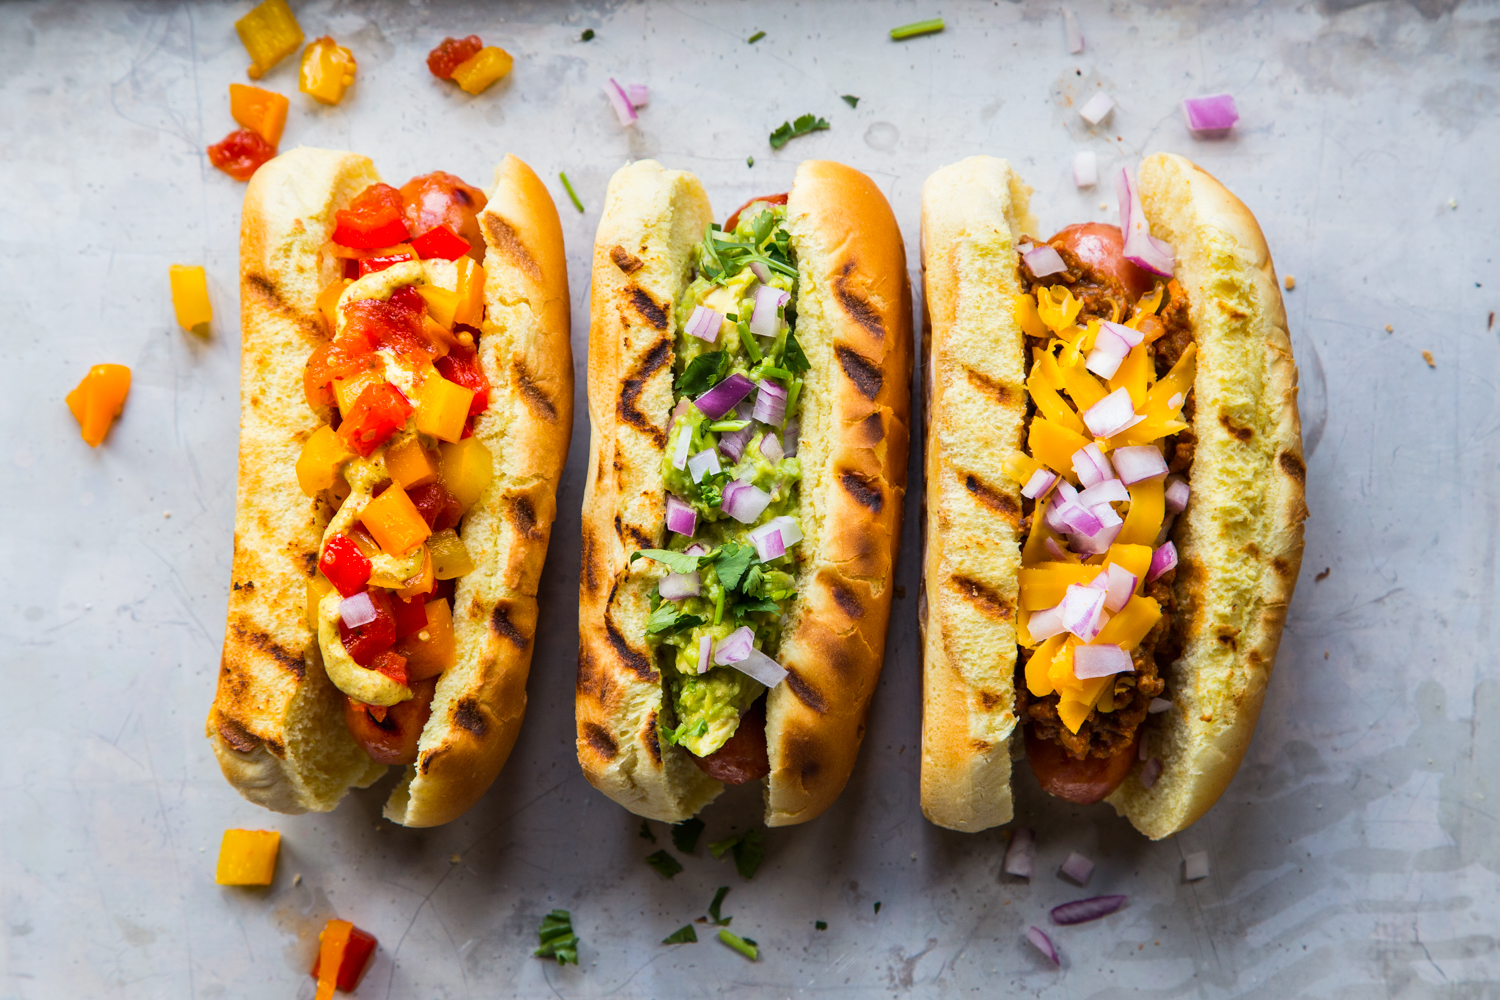 Canned Hot Dog Recipes